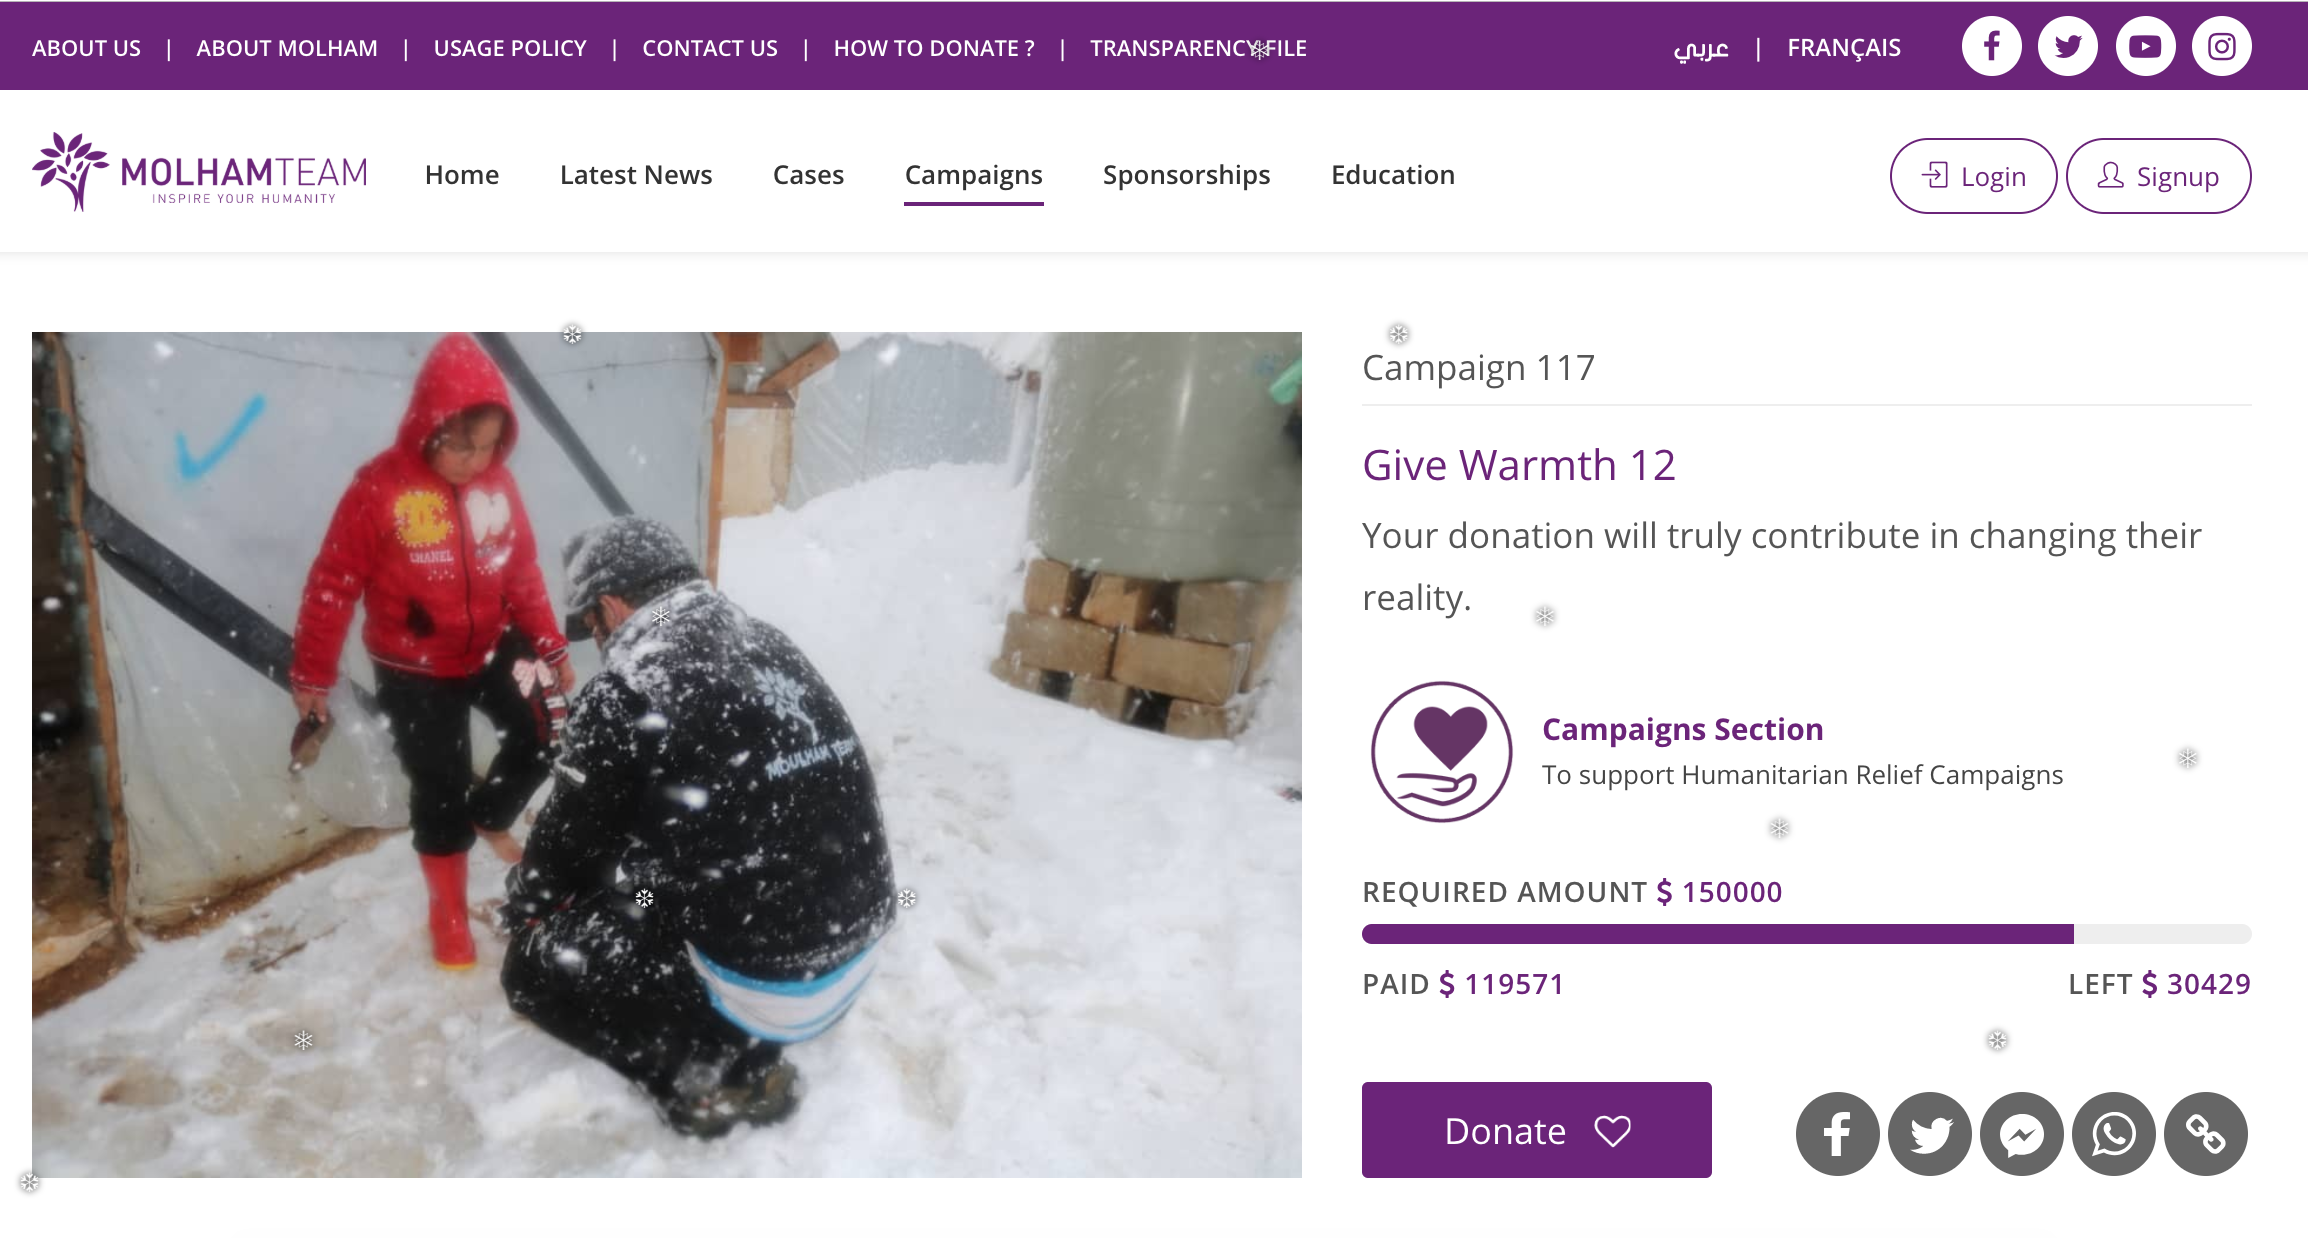 Please join us, and share your warmth by donating to this cause, via the trusted Molham Team.